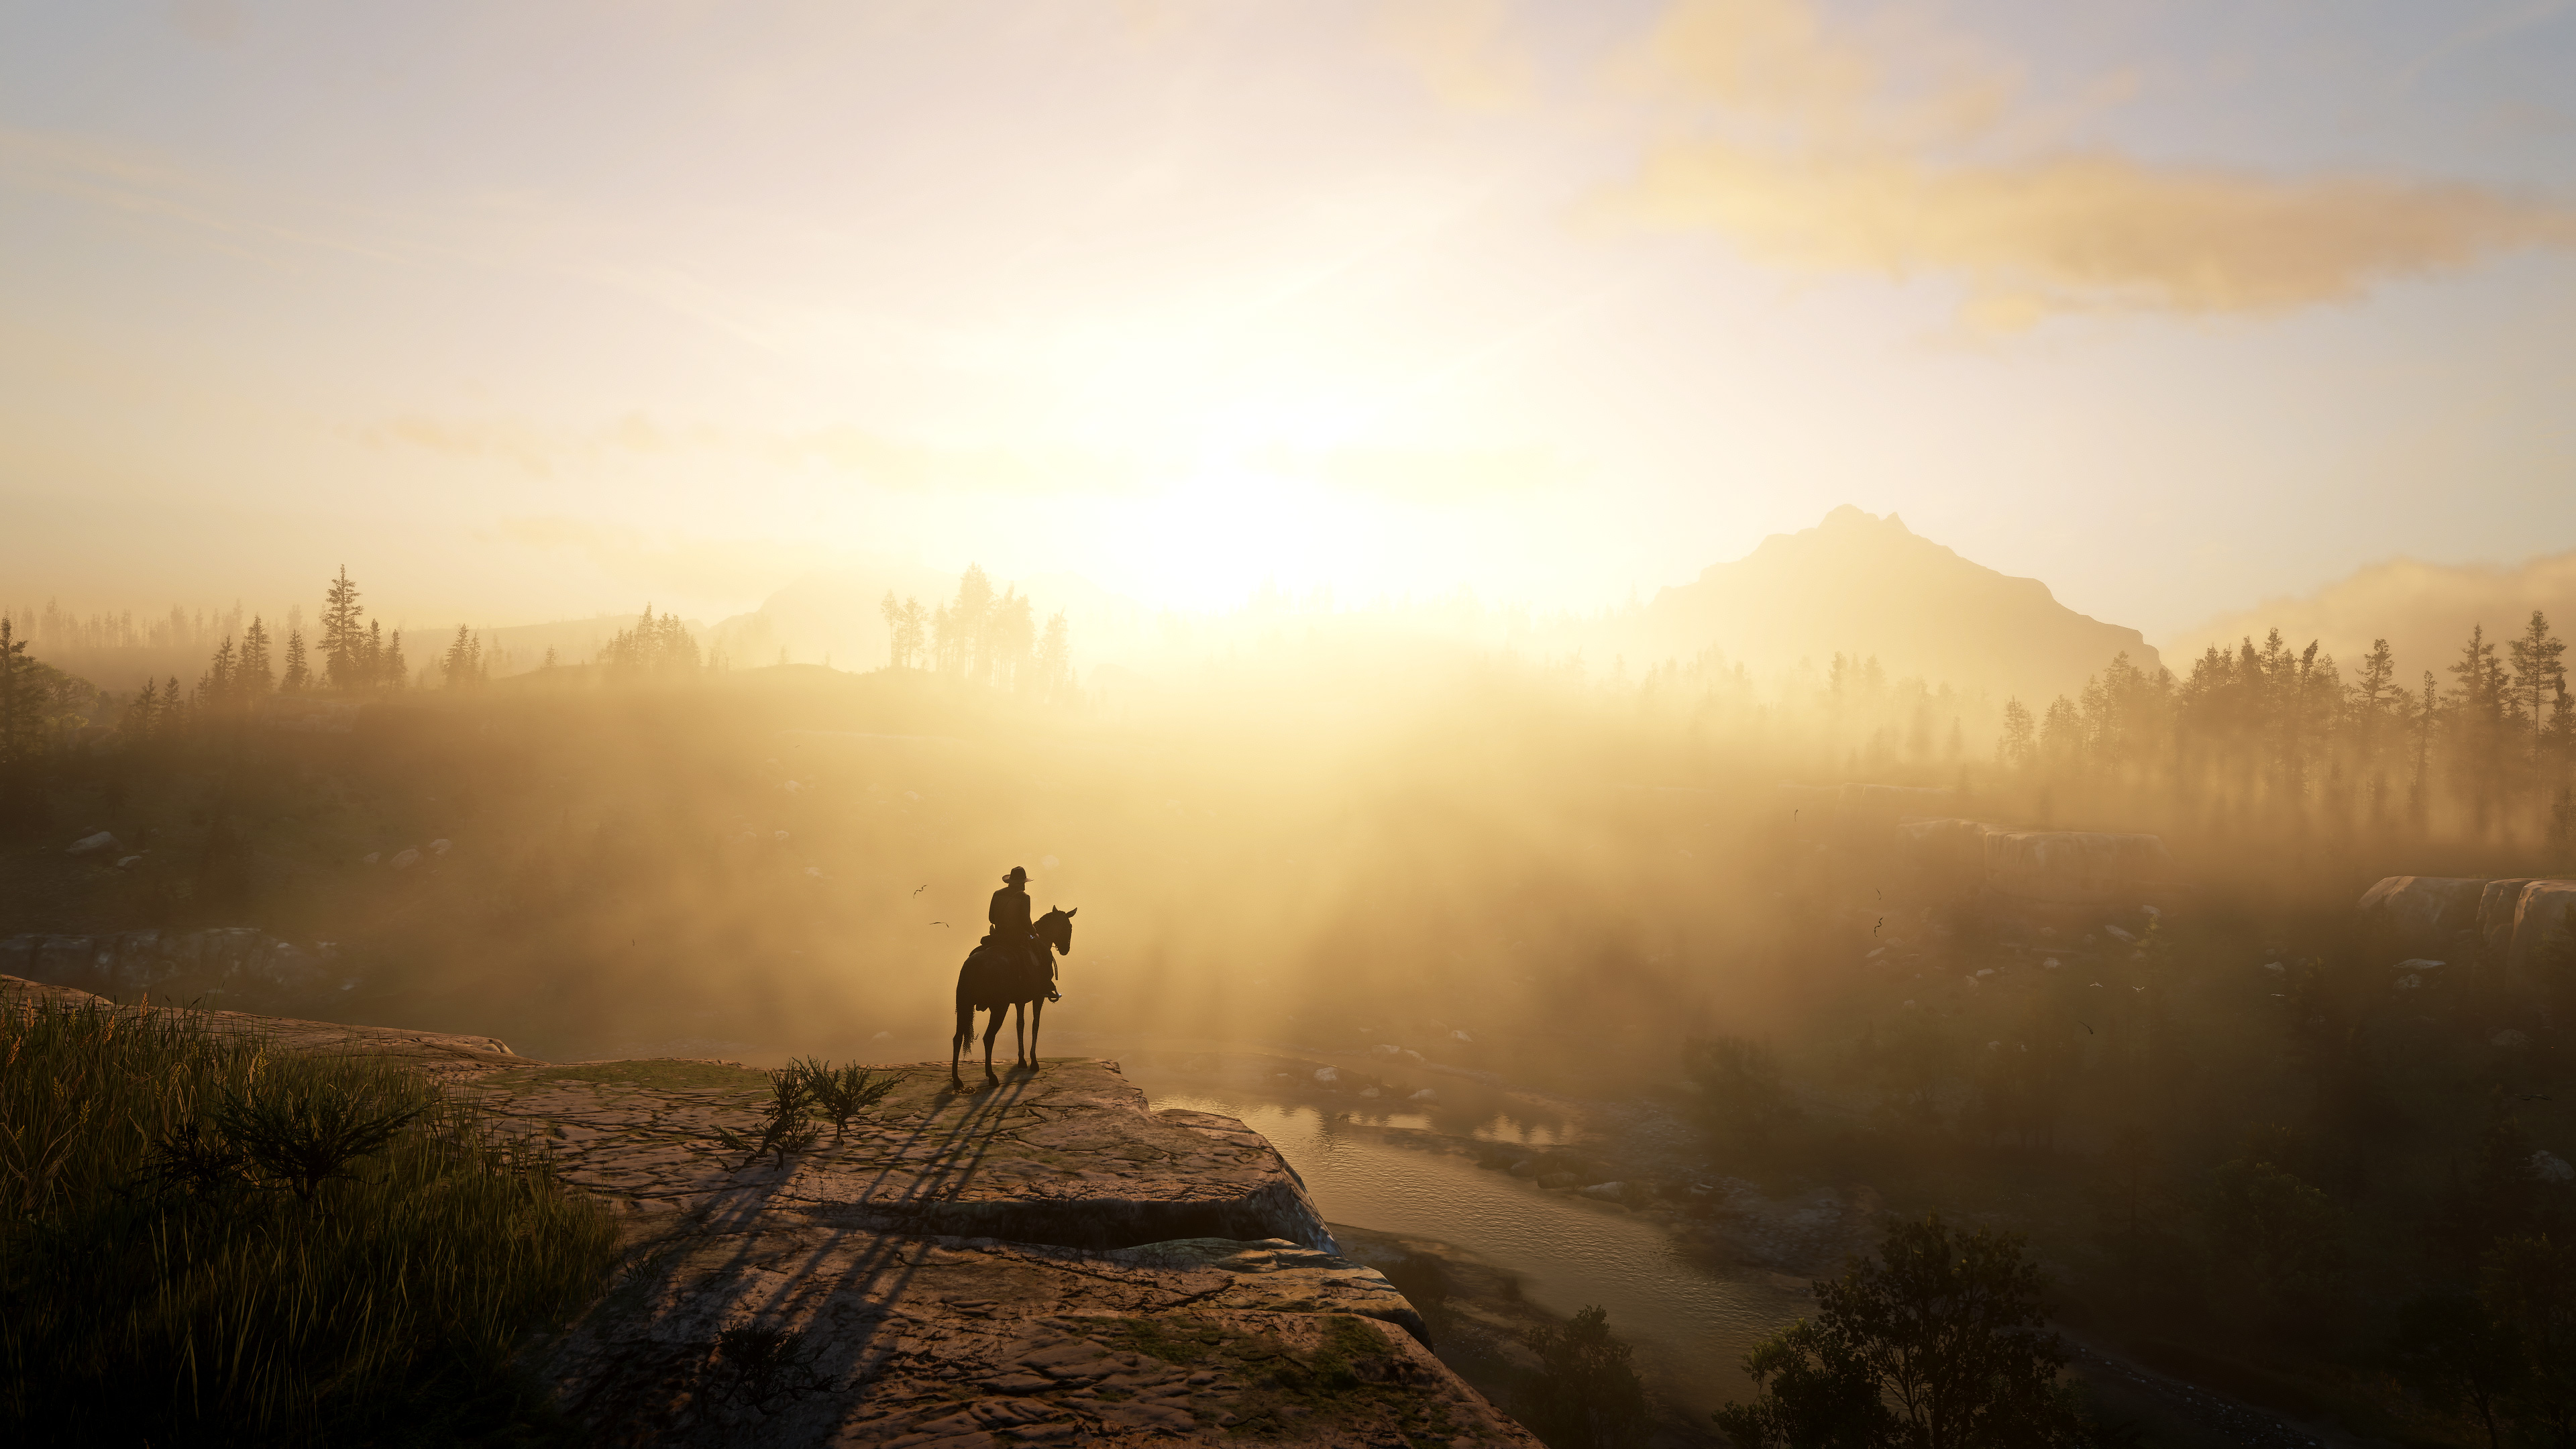 red dead redemption 2 the golden hour 2020 1581272975 - Red Dead Redemption 2 The Golden Hour 2020 - Red Dead Redemption 2 The Golden Hour 2020 wallpapers, Red Dead Redemption 2 The Golden Hour 2020 4k wallpapers